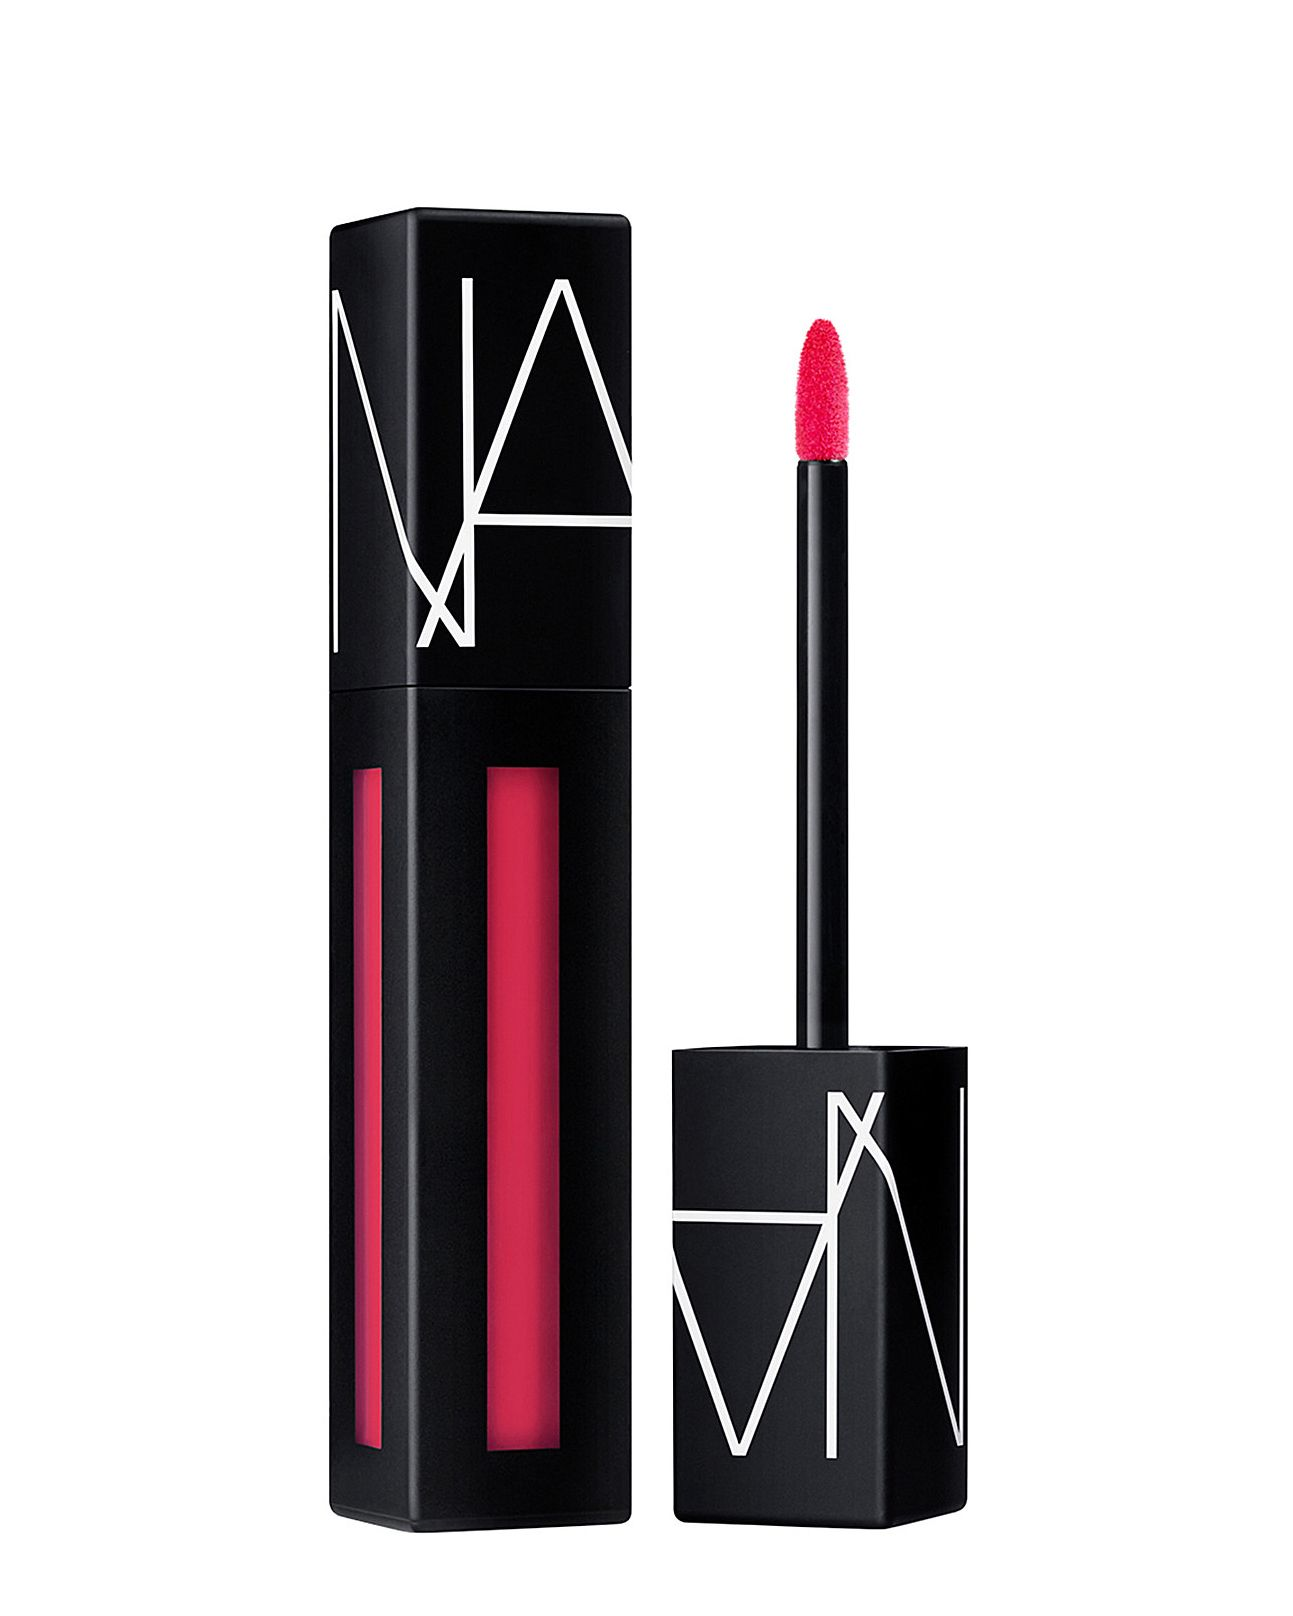 NARS Powermatte Lip Pigment in Get Up Stand Up